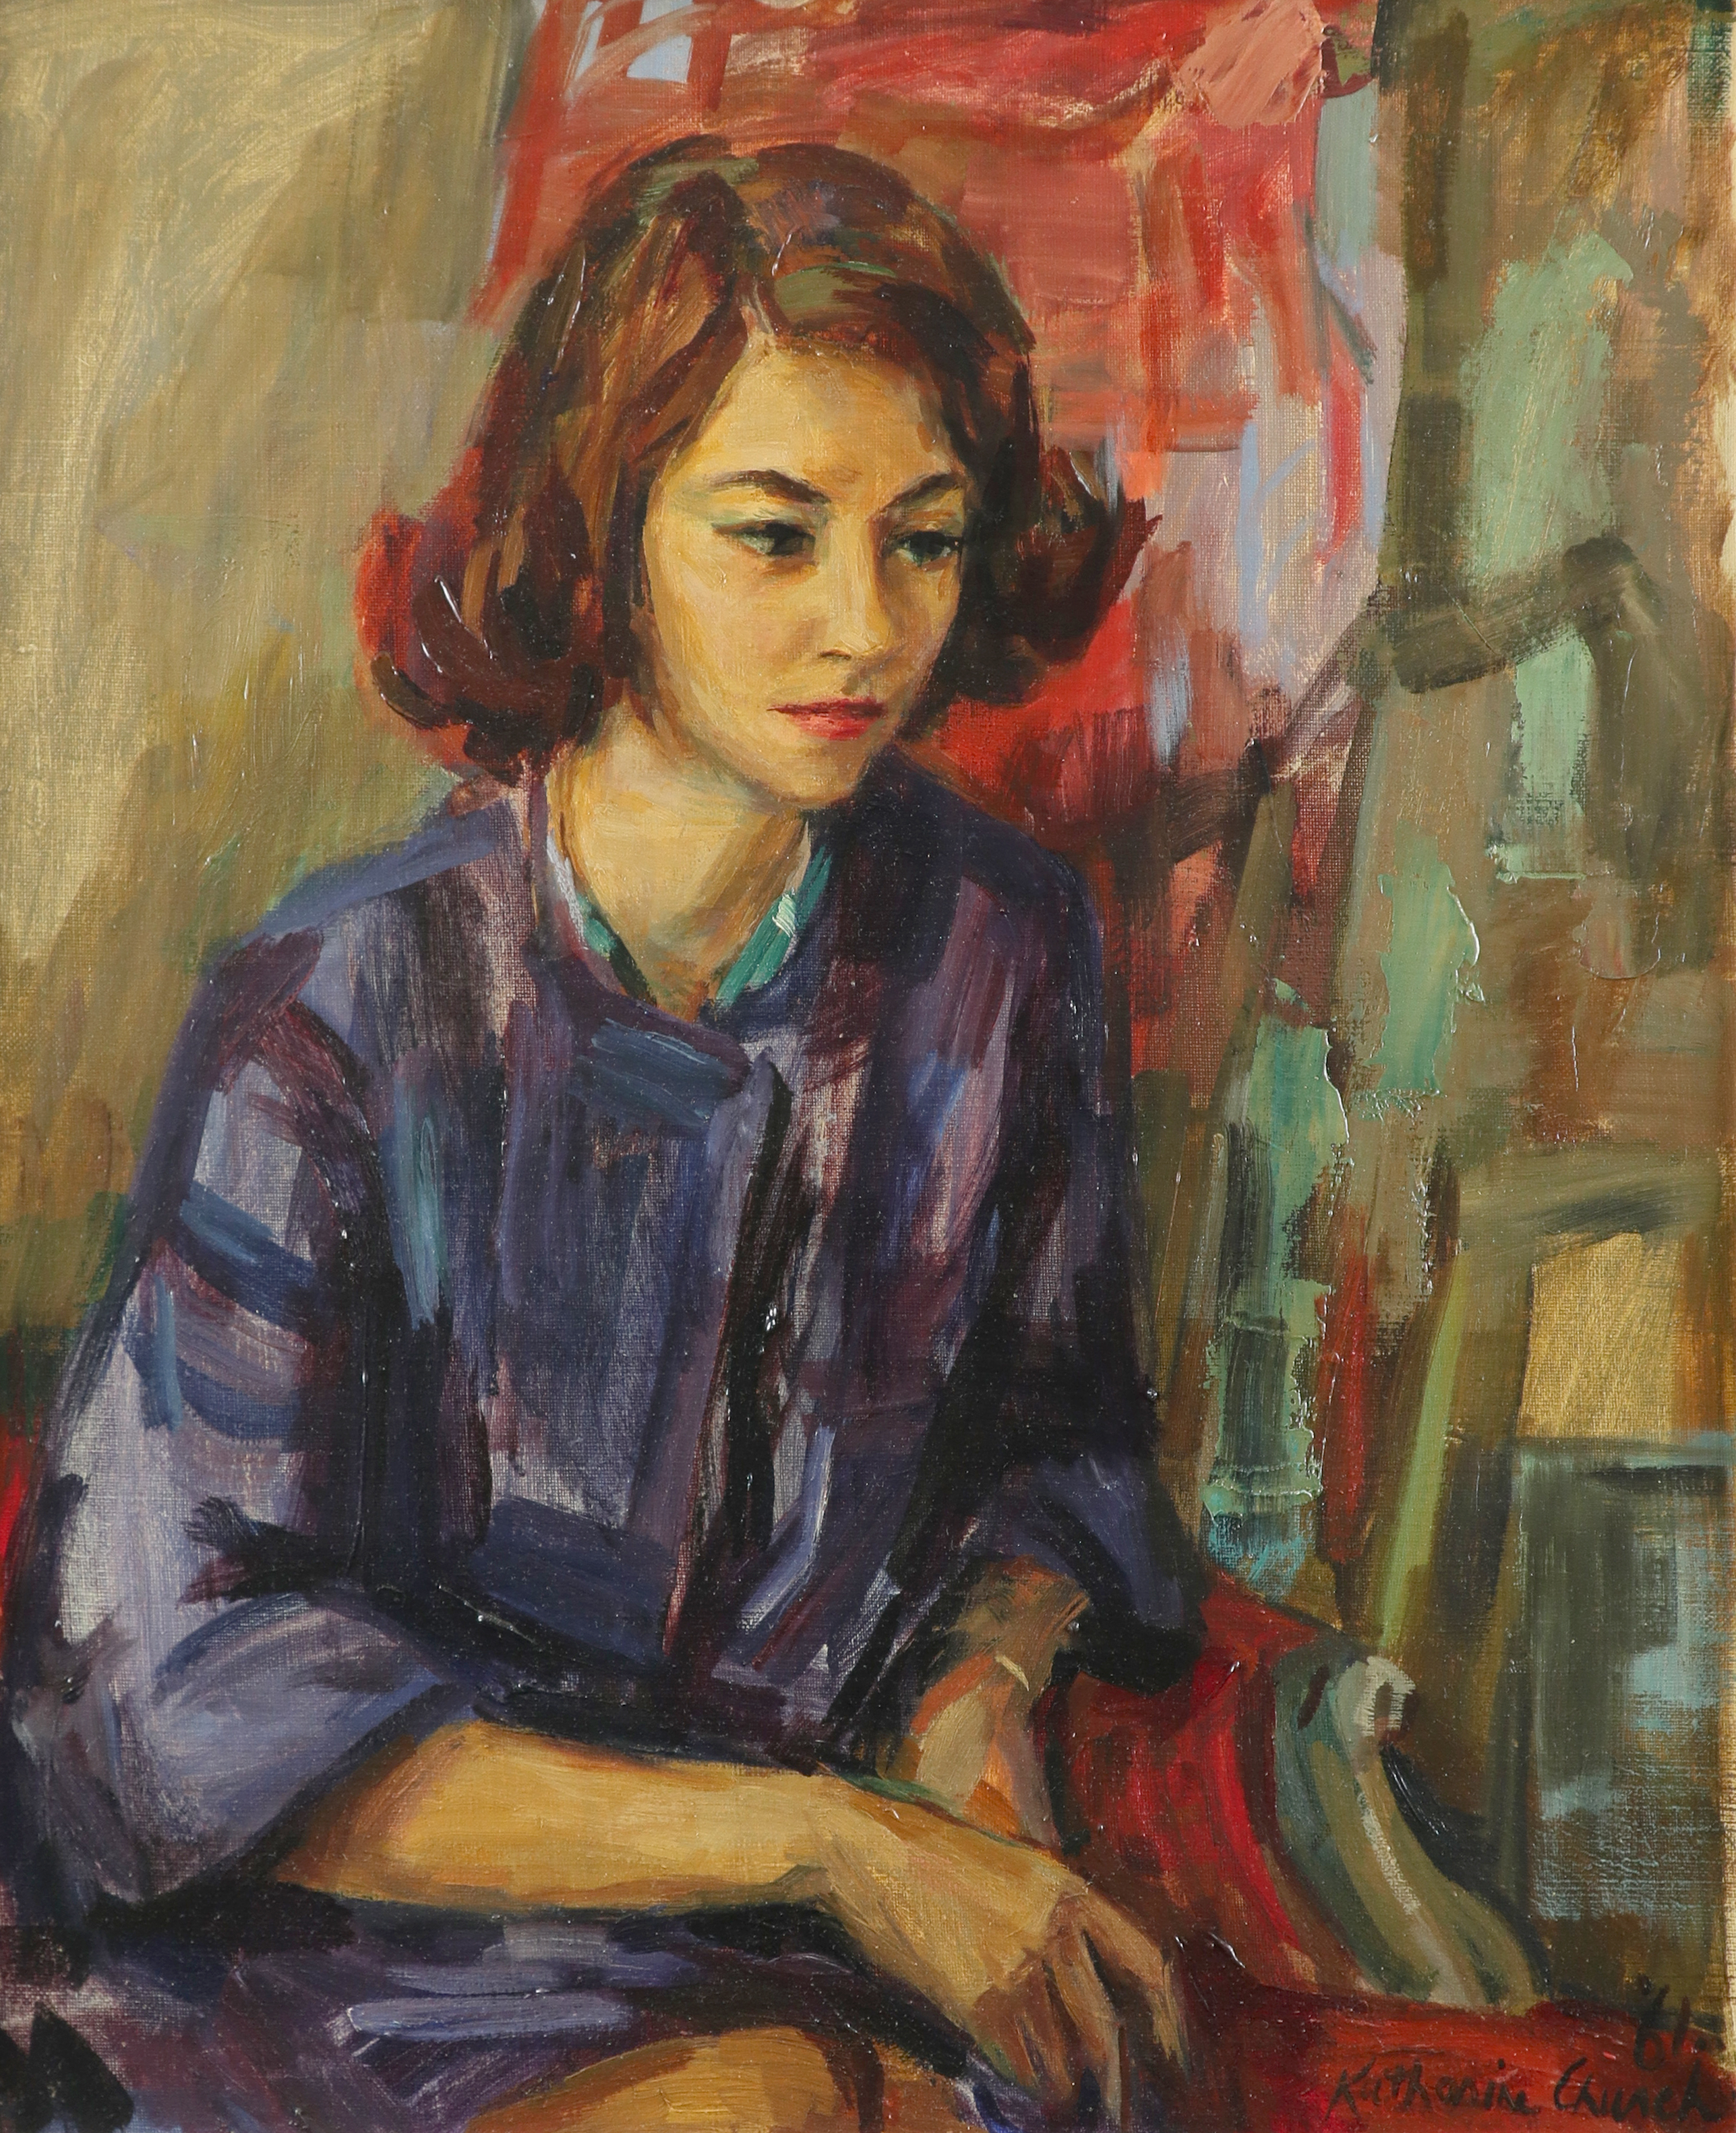 ‡Katherine Church (1910-1999) Portrait of a lady seated Signed and dated '61/Katherine Church (lower